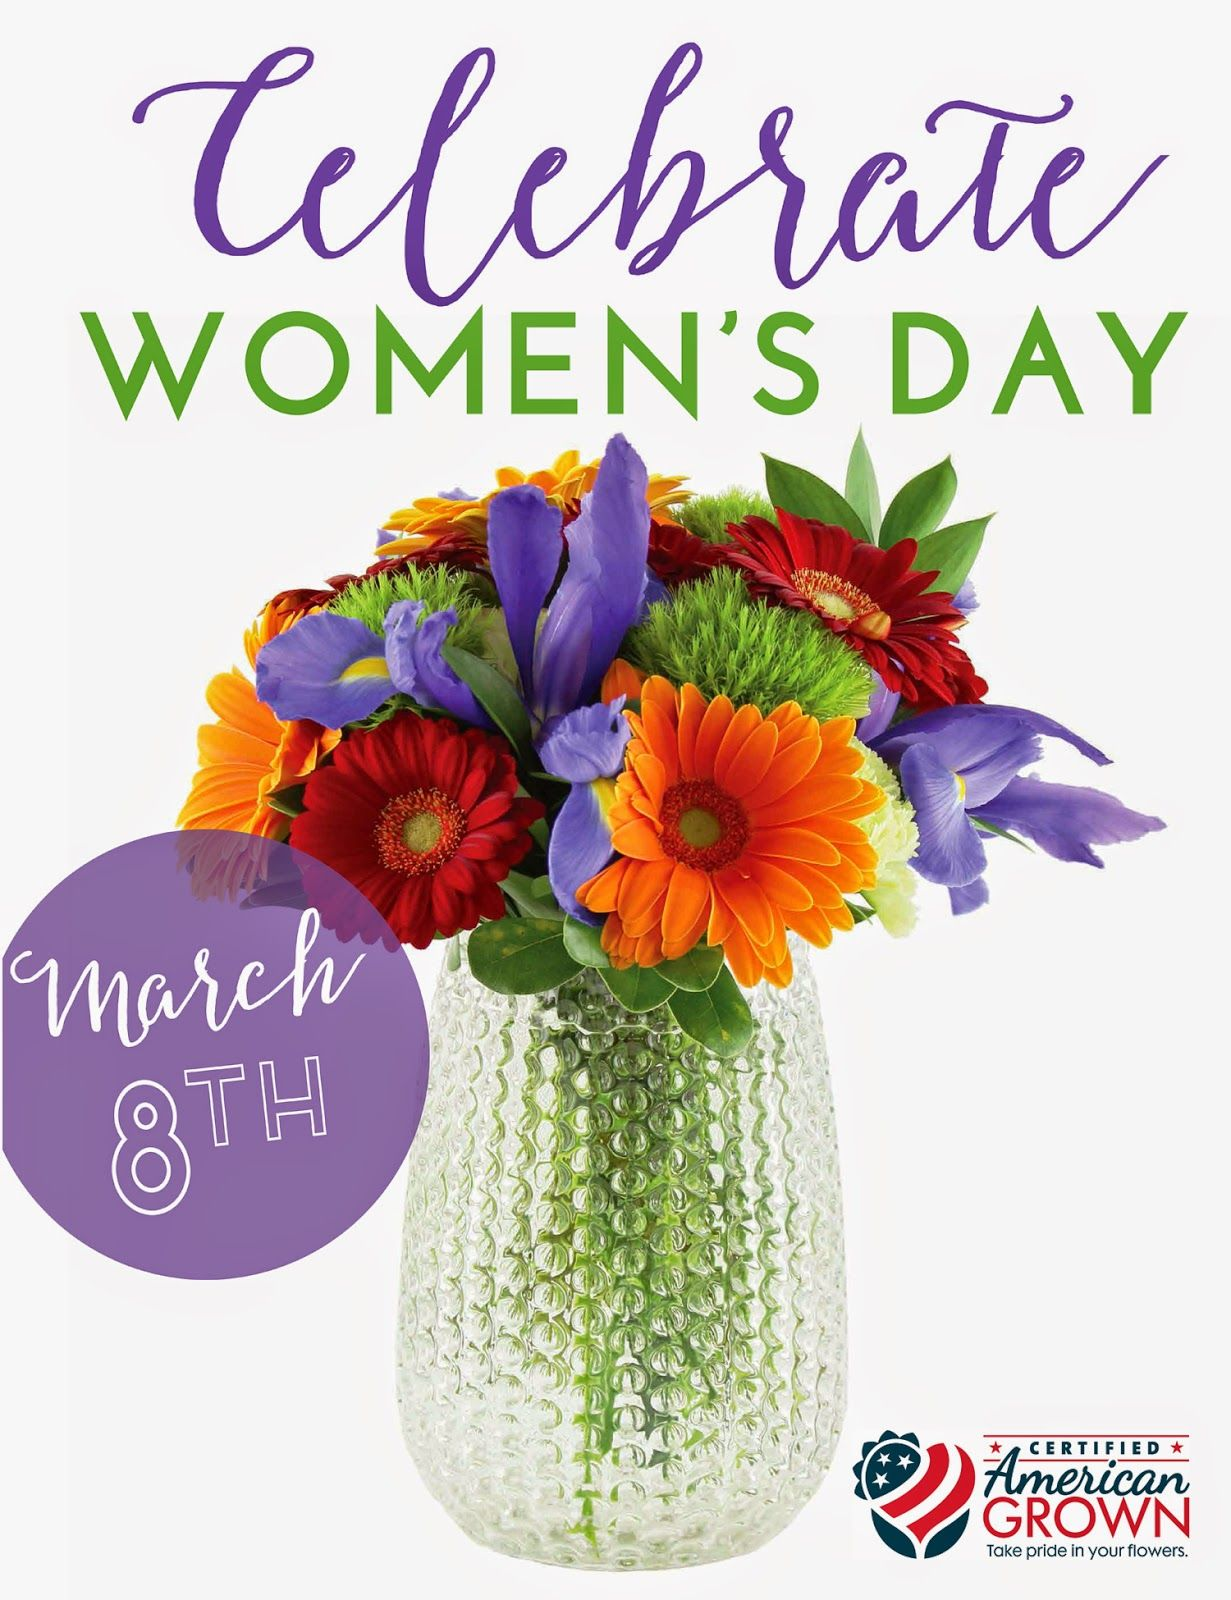 Womens day is march 8th celebrate with flowers womens day about flower farming cut flowers and floral arrangements for sun valley floral farms which specializes in growing iris lilies and tulips izmirmasajfo Choice Image